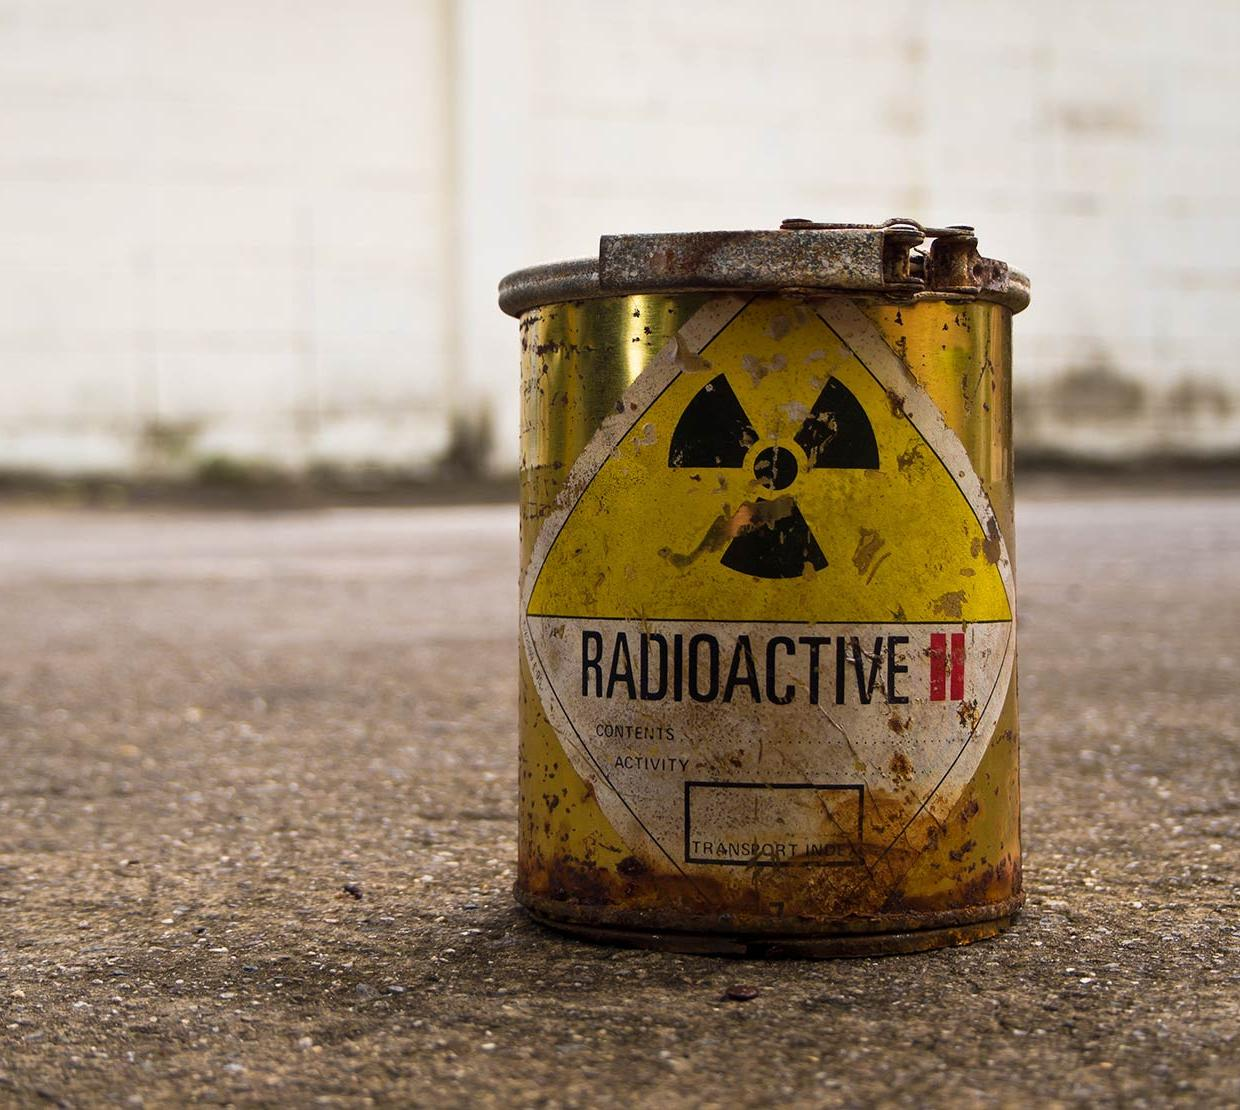 Radioactive waste bucket in concrete backdrop